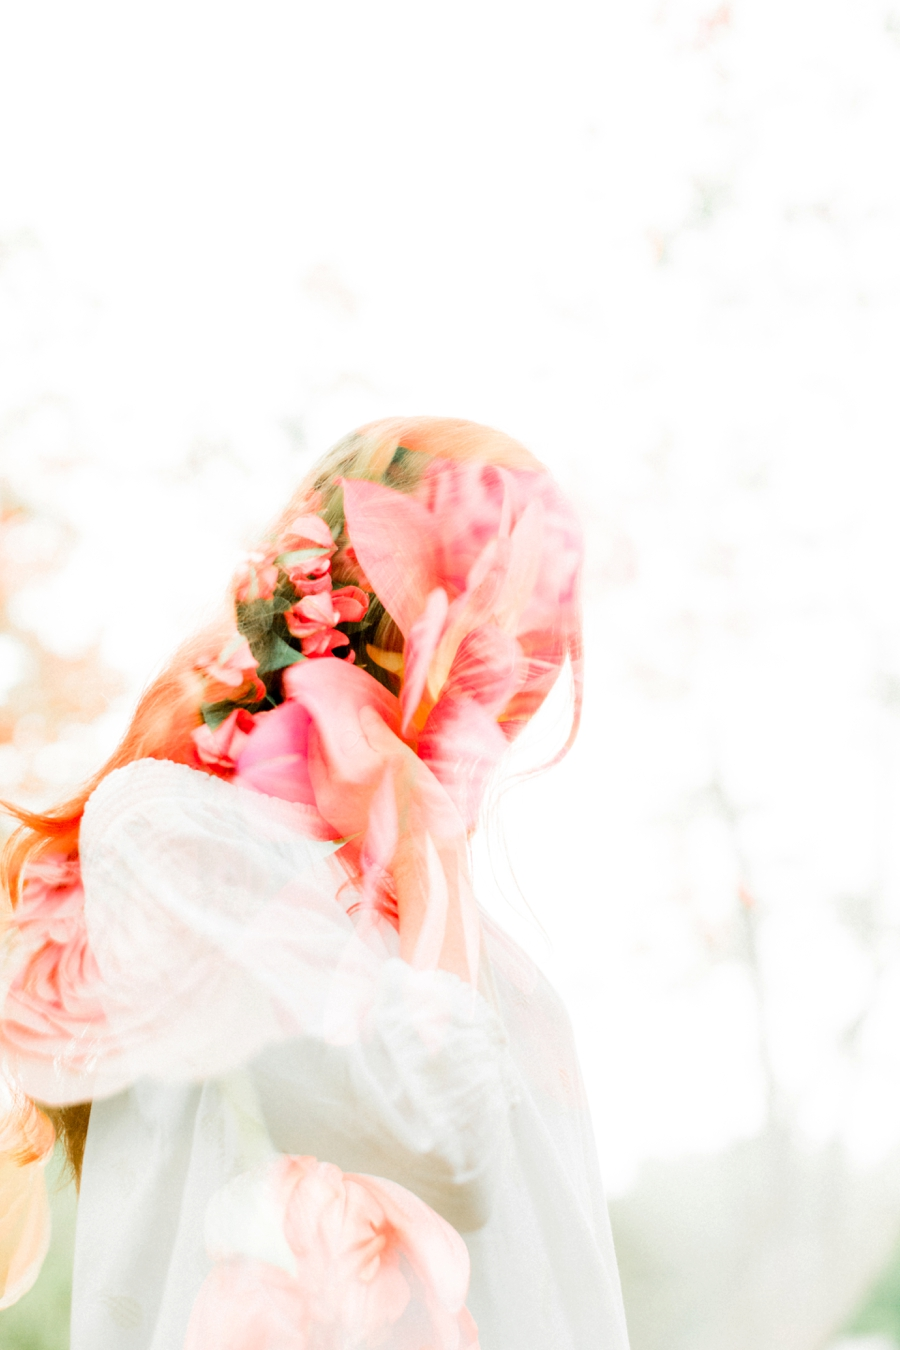 light and airy double exposure